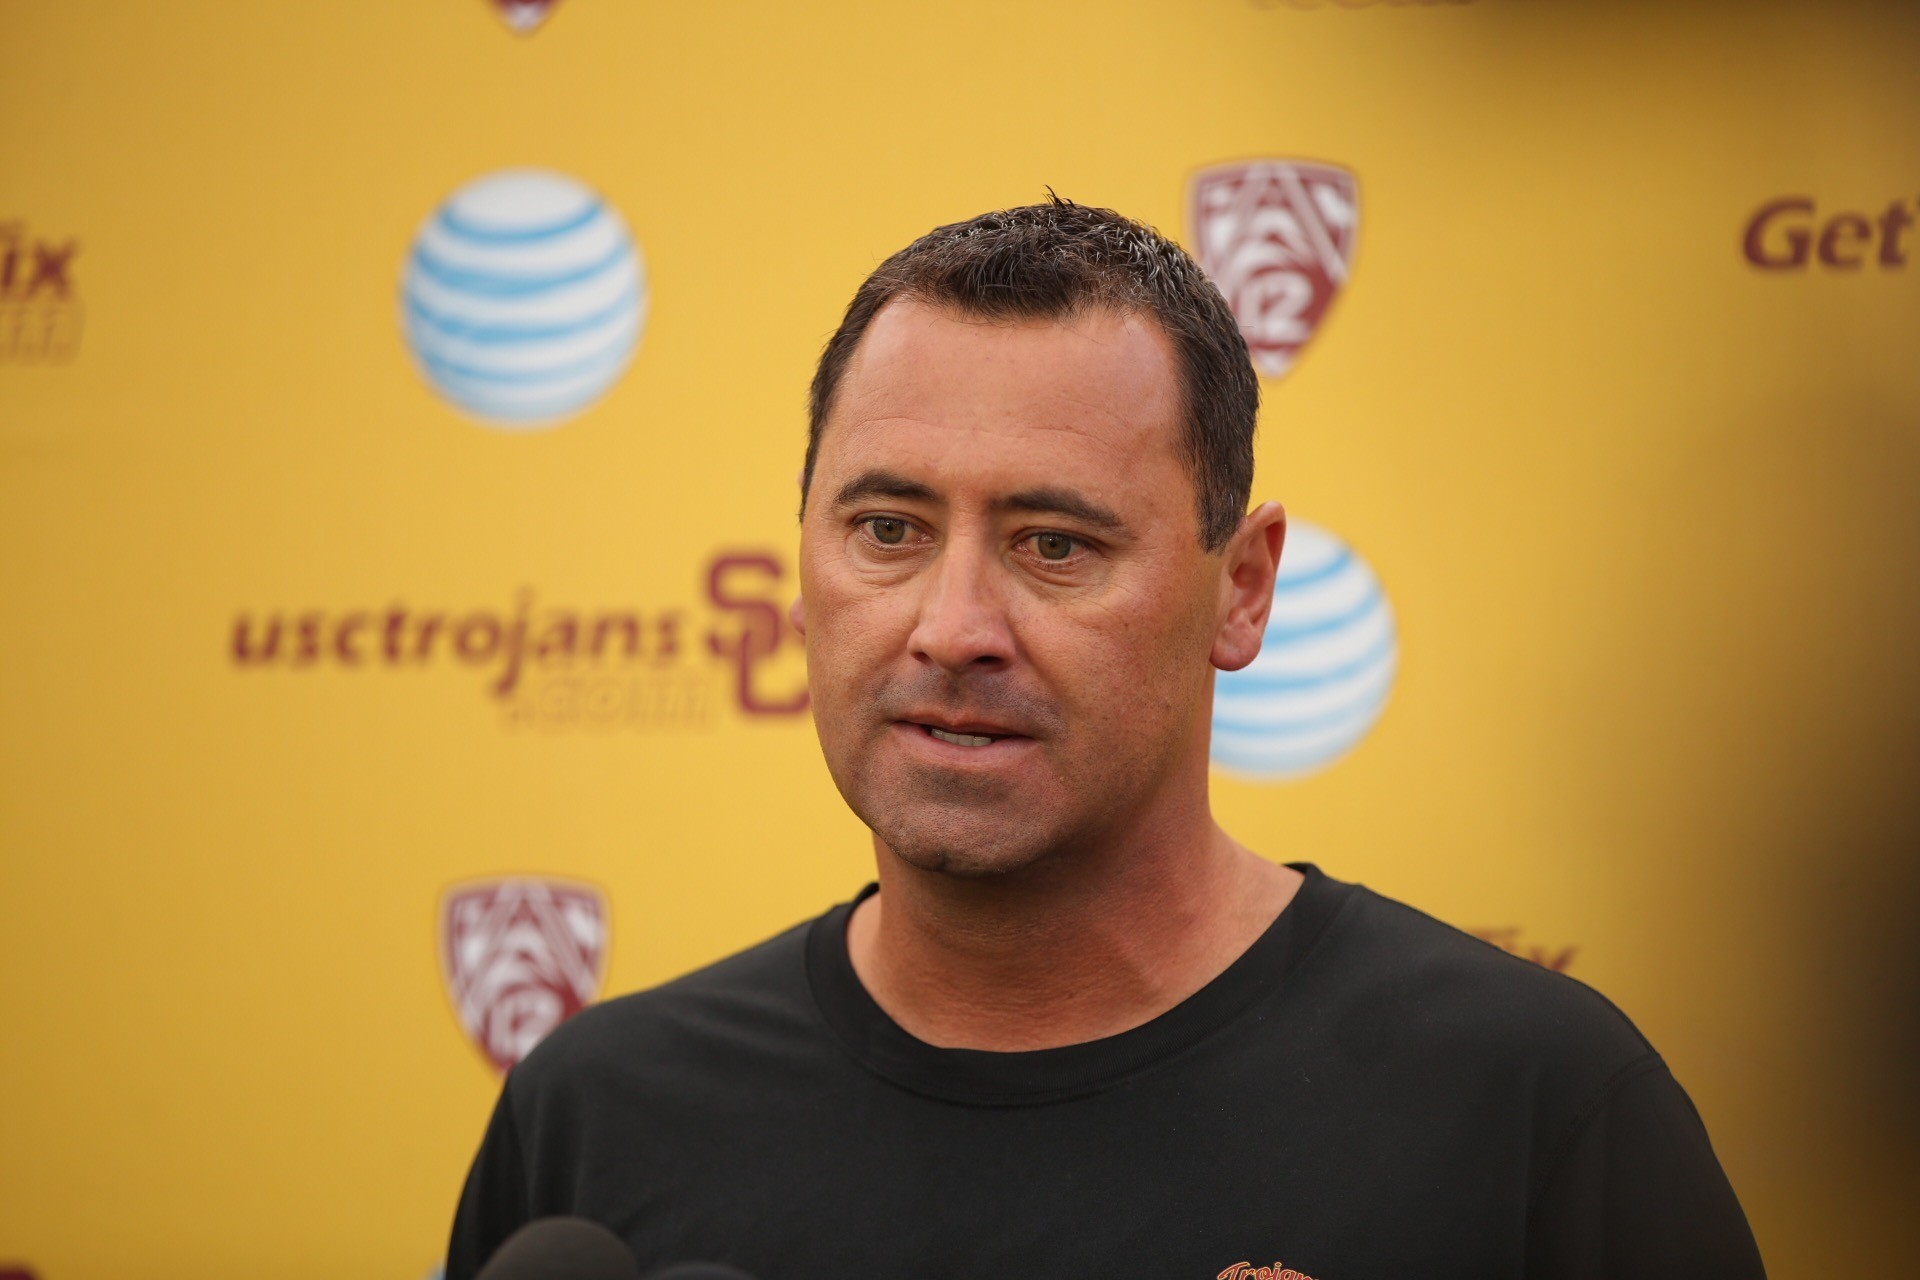 USC says Steve Sarkisian's suit is 'full of half truths' and 'outright falsehoods'